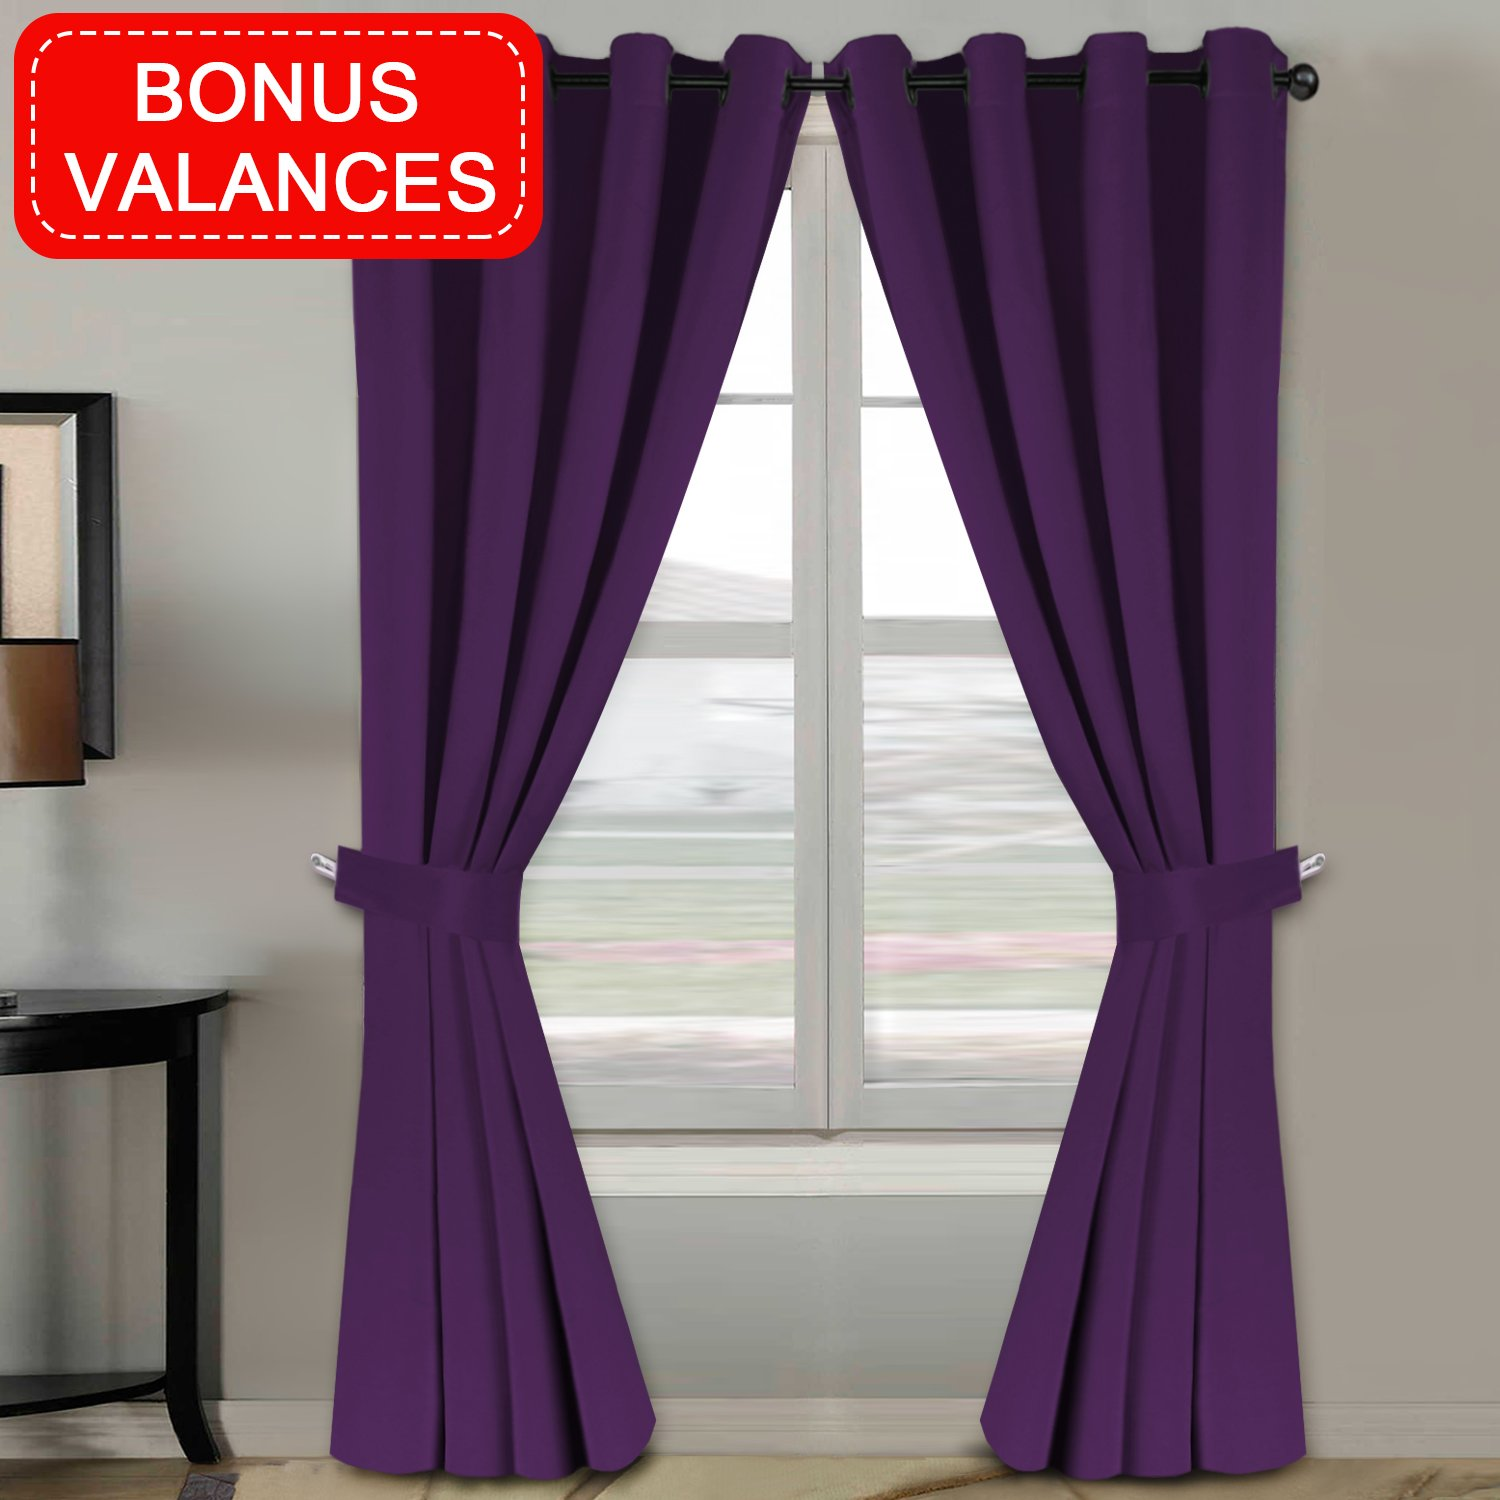 H.VERSAILTEX Blackout Room Darkening Thermal Insulated Window Curtains Bedroom Antique Grommet Top Window Treatment Sets, Plum Purple, 2 Panels 84 inches Long, Bonus 2 Valances